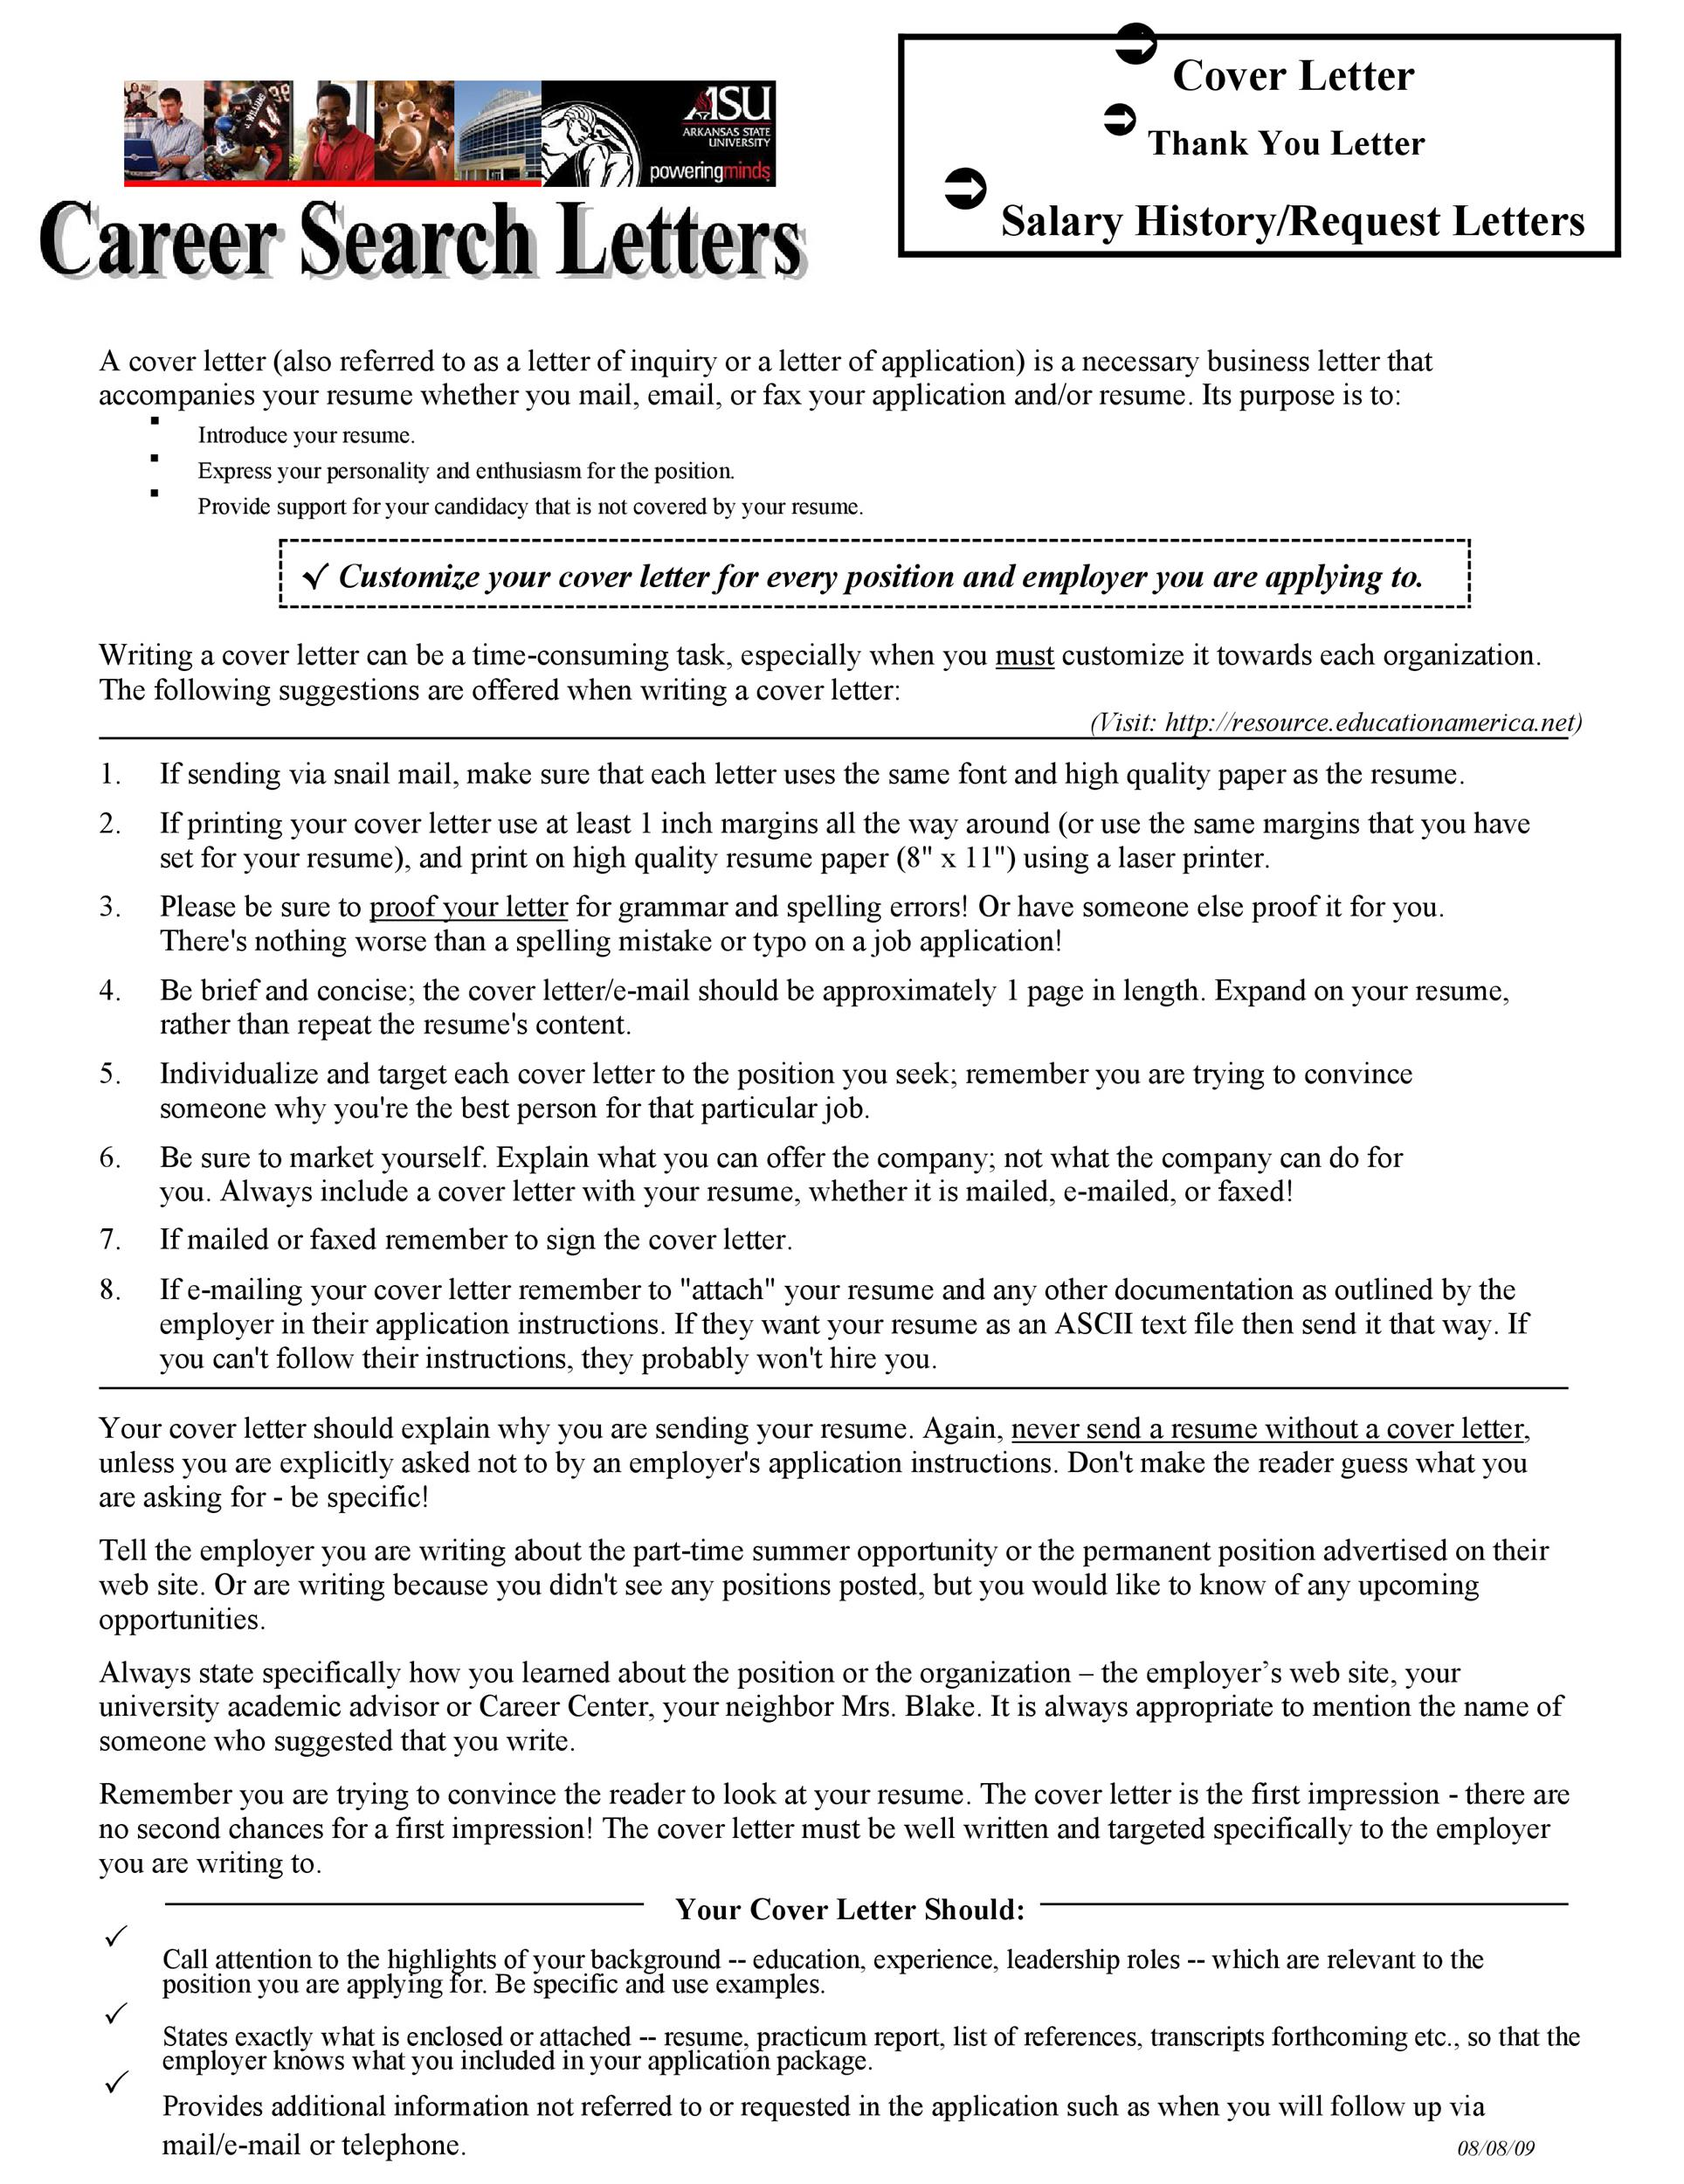 salary requirements in cover letter